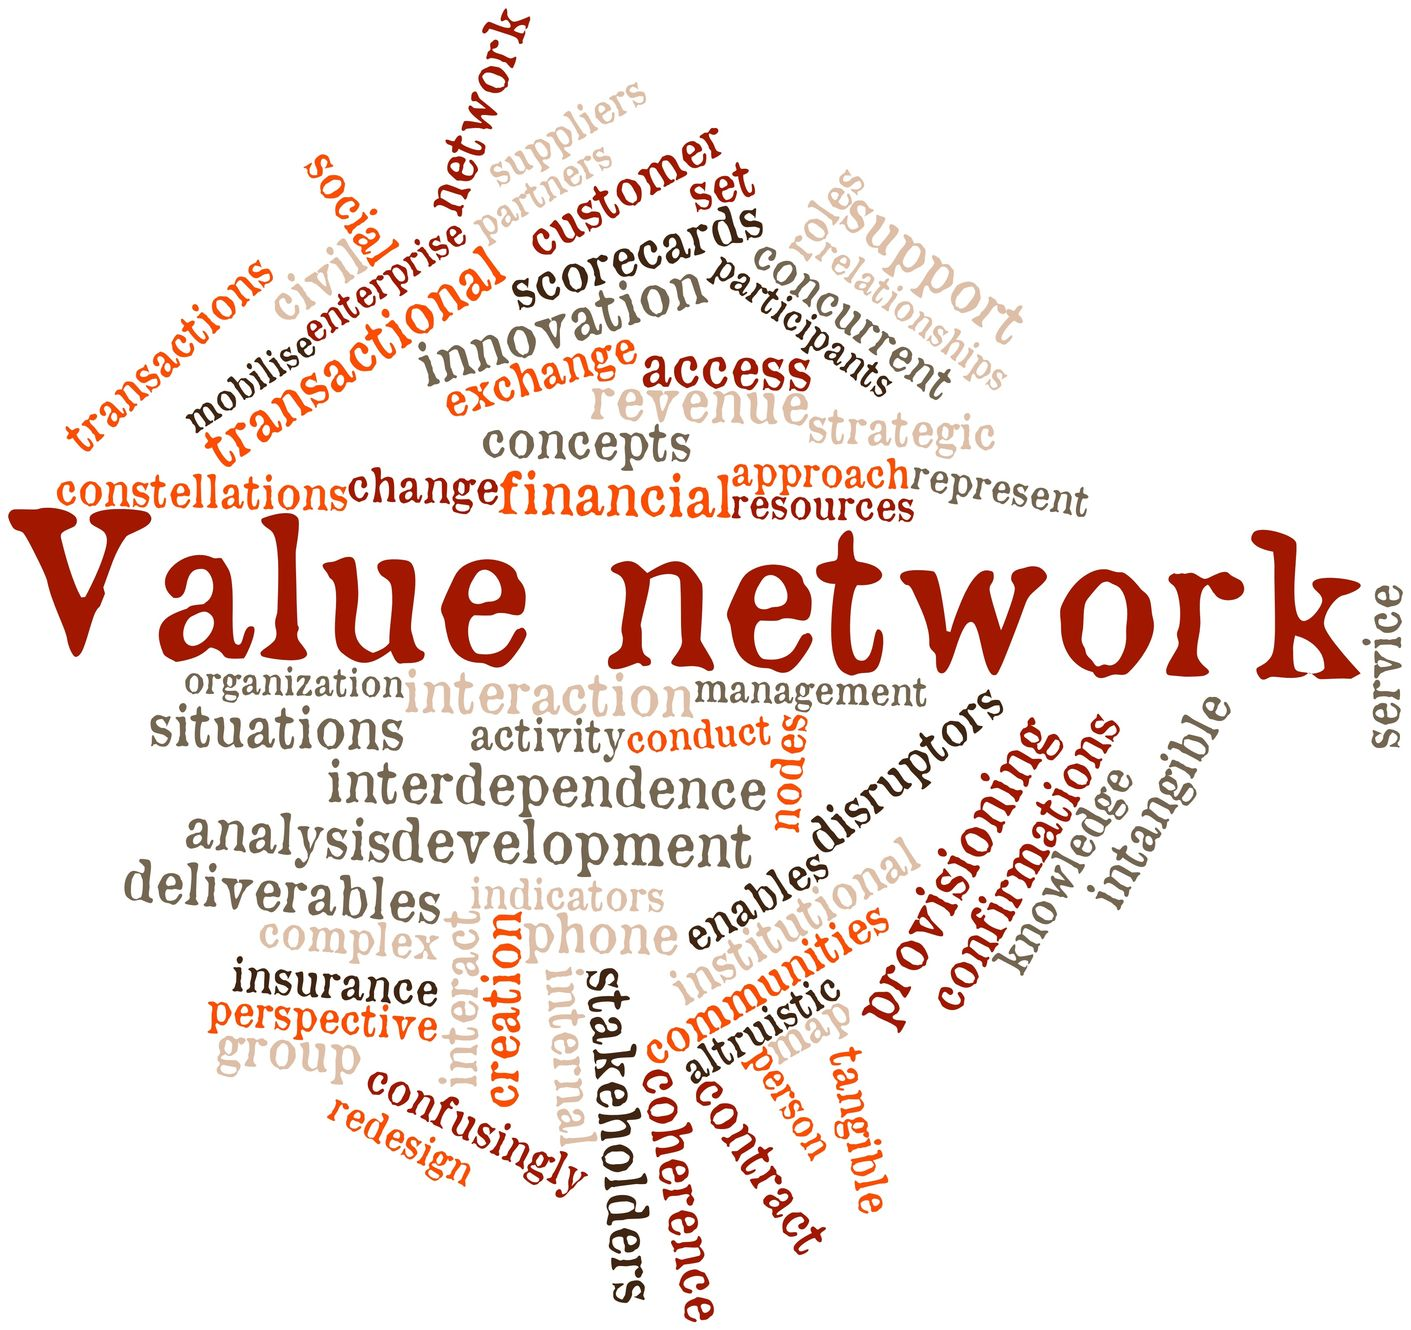 value-network-wordcloud